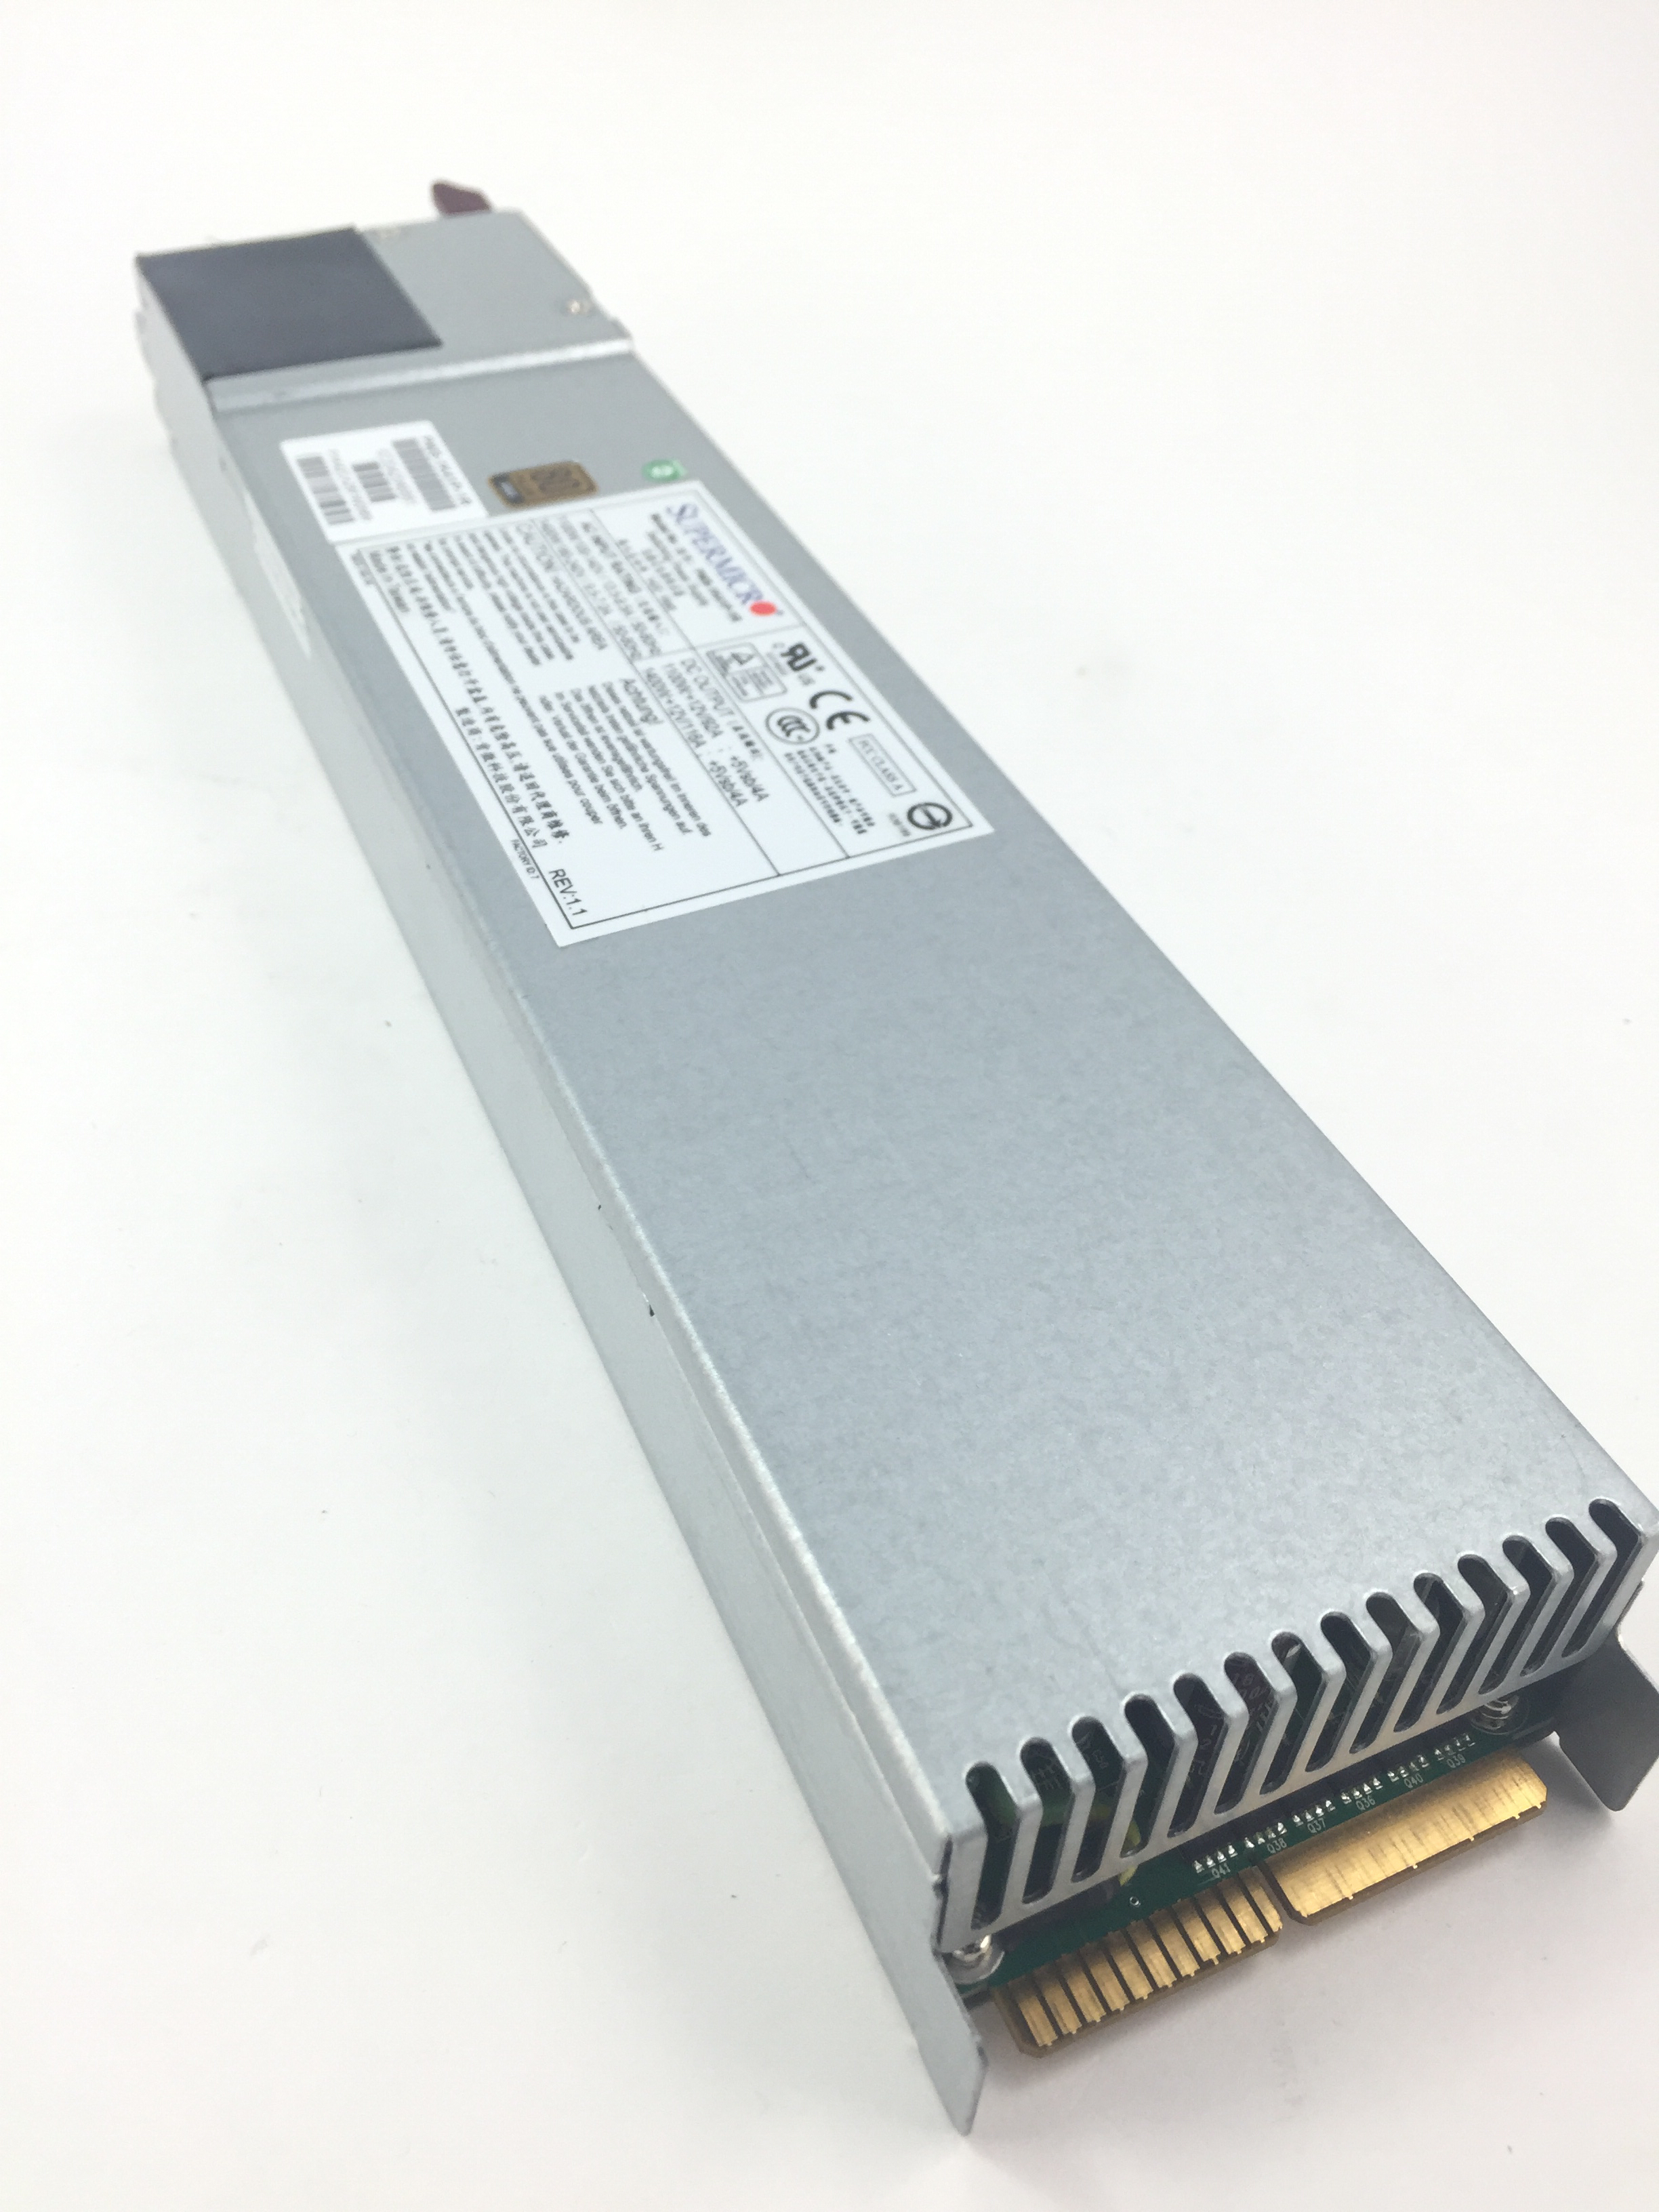 SUPERMICRO 1400W REDUNDANT SINGLE OUTPUT POWER SUPPLY, GOLD LEVEL PMBUS (PWS-1K41P-1R)